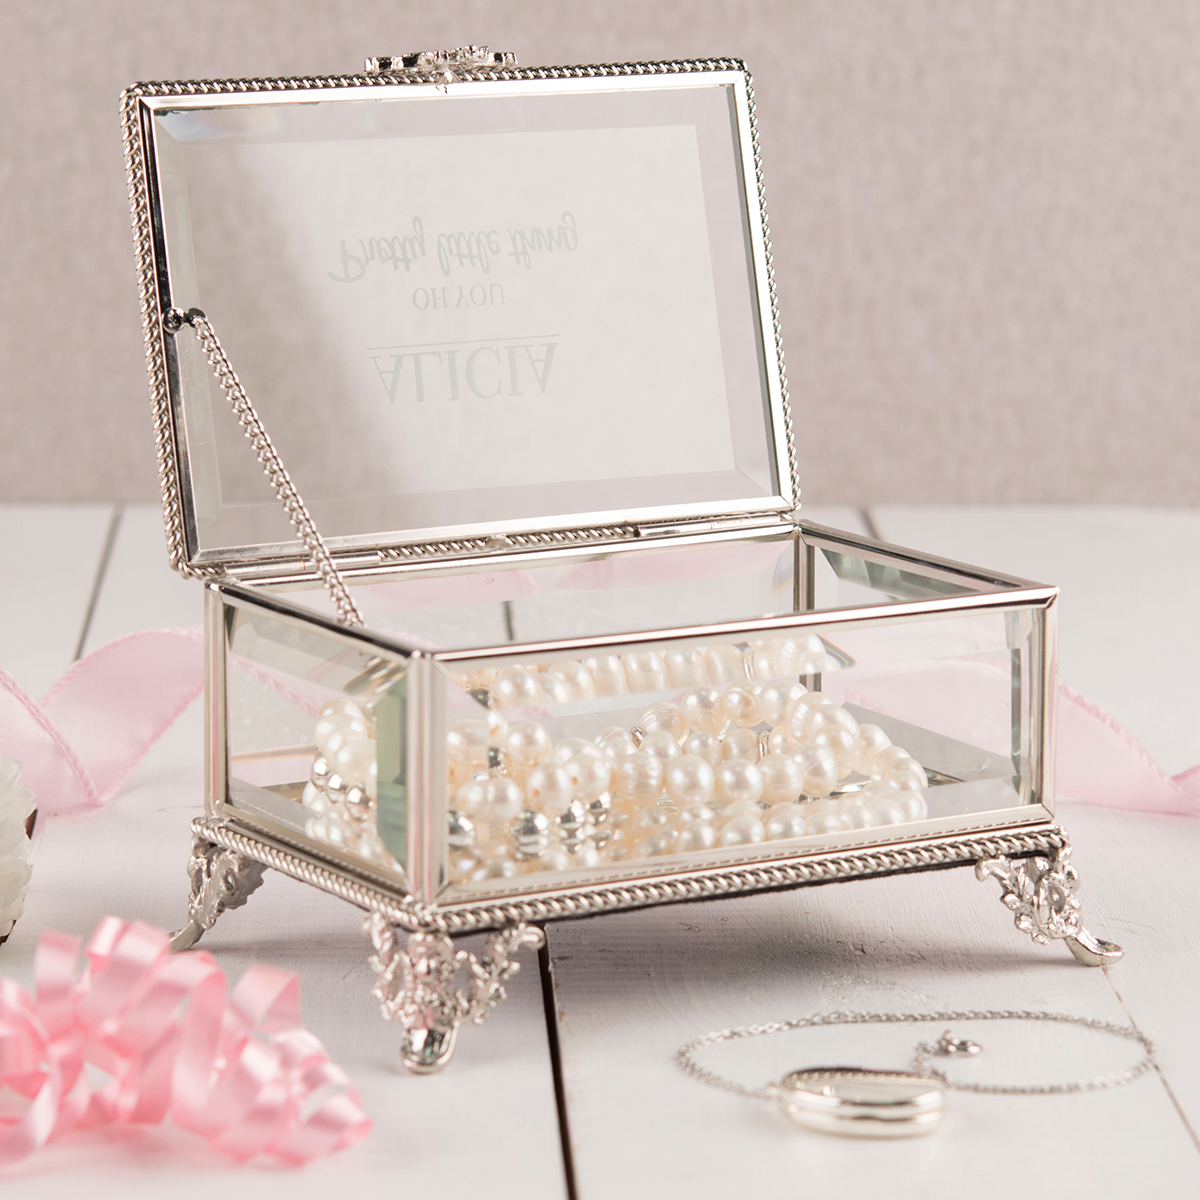 Personalised Hestia Jewellery Box  Oh You Pretty Little Thing